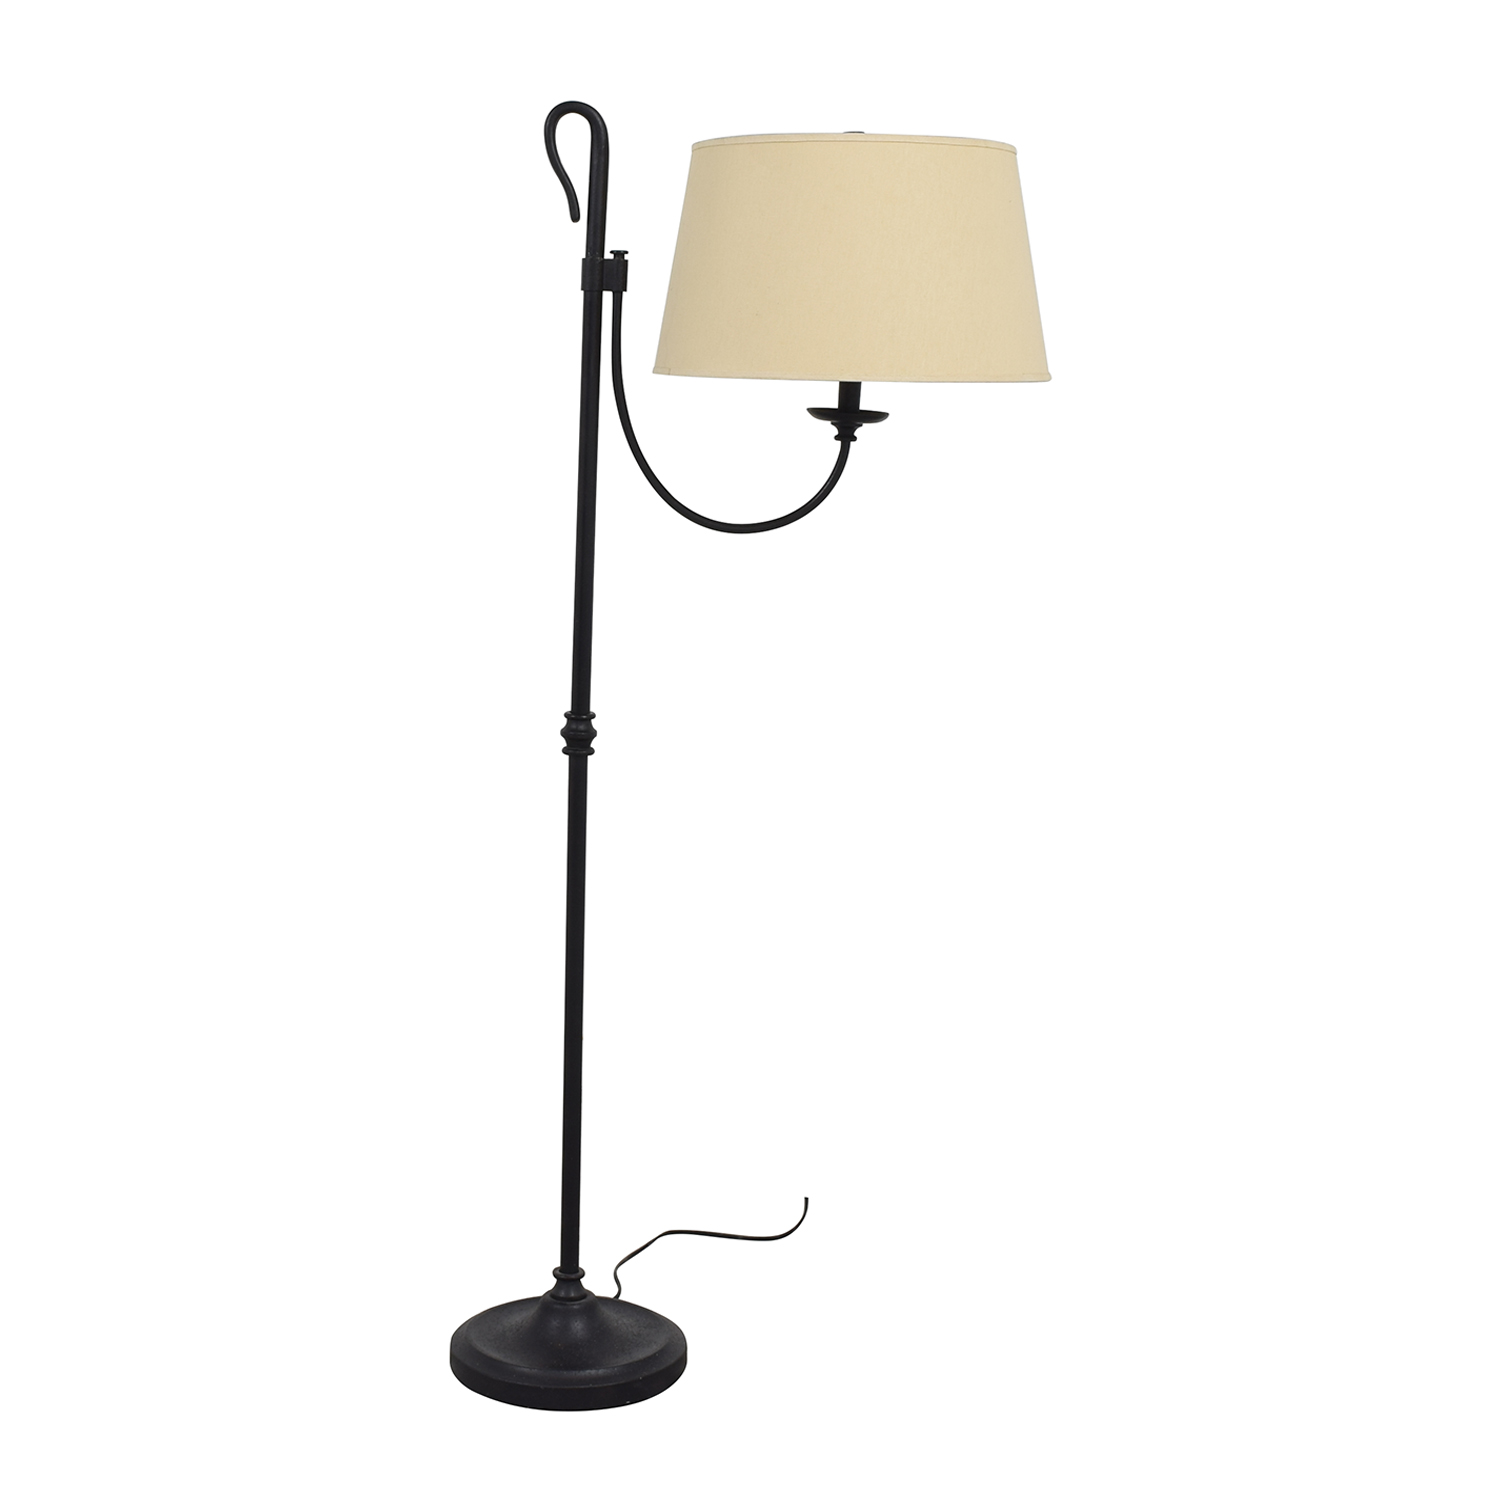 Pottery Barn Pottery Barn Black Metal Floor Lamp nj